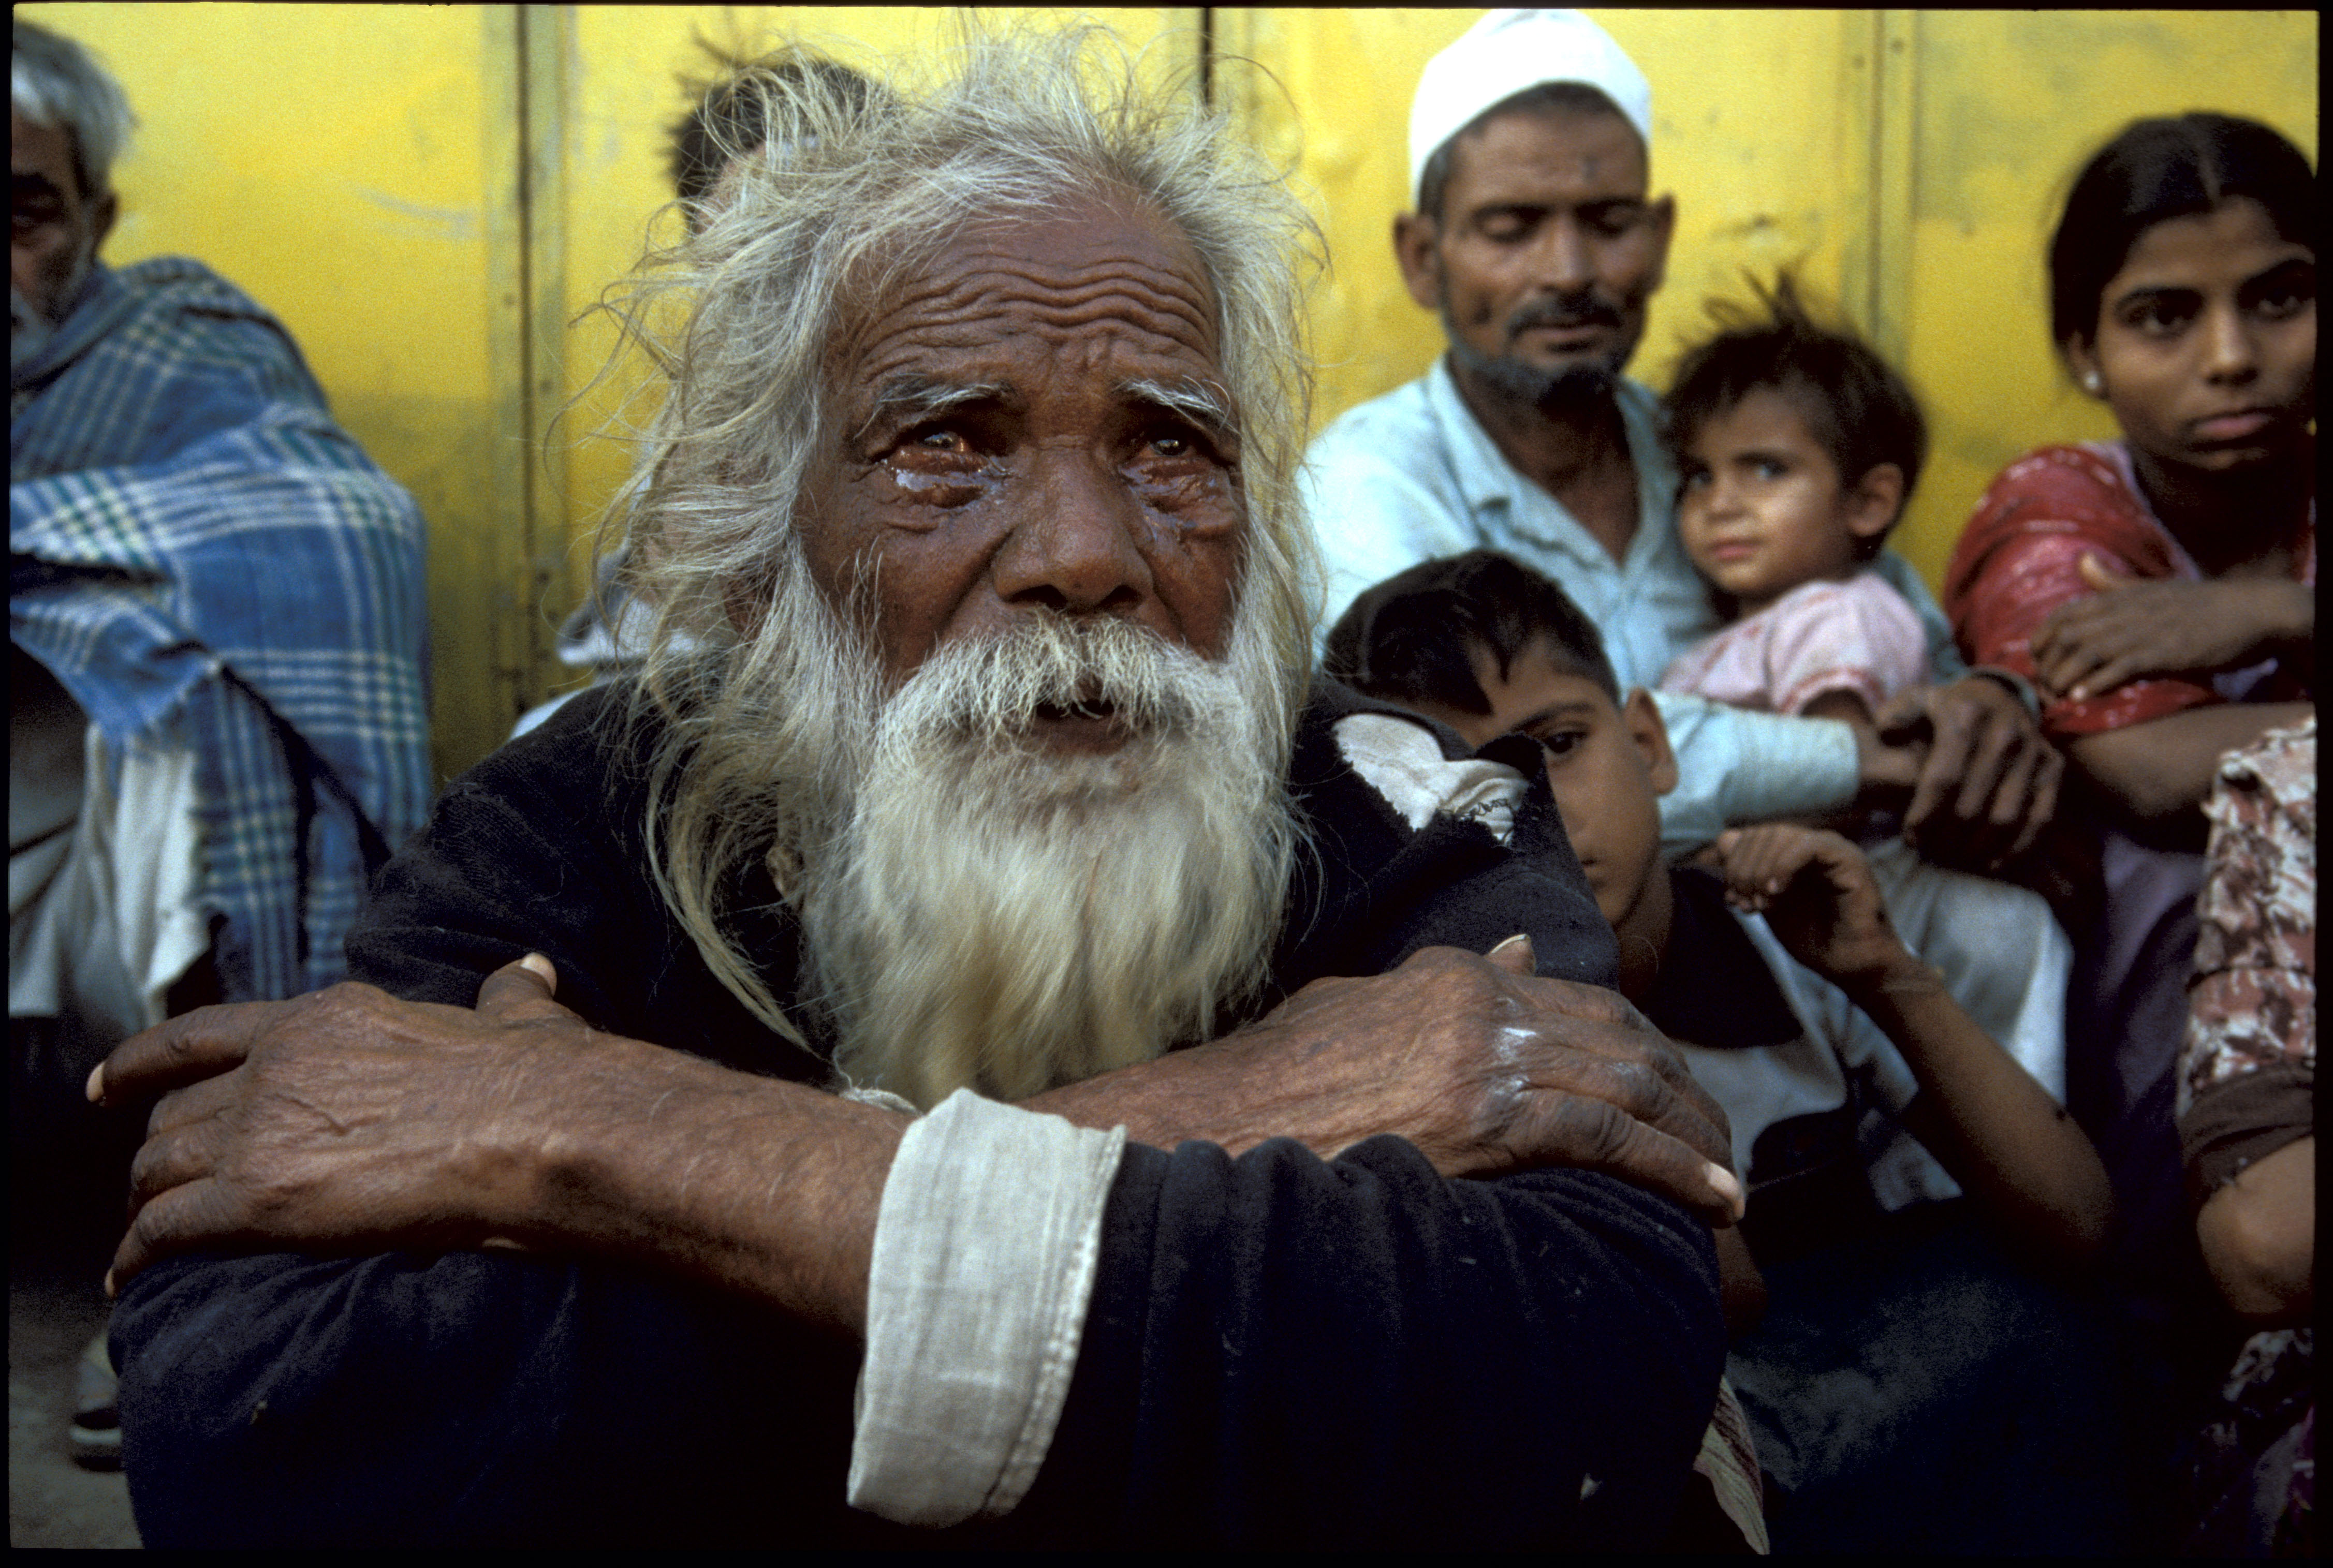 1984: Bhopal, India. Victims of Union Carbide industrial disaster.